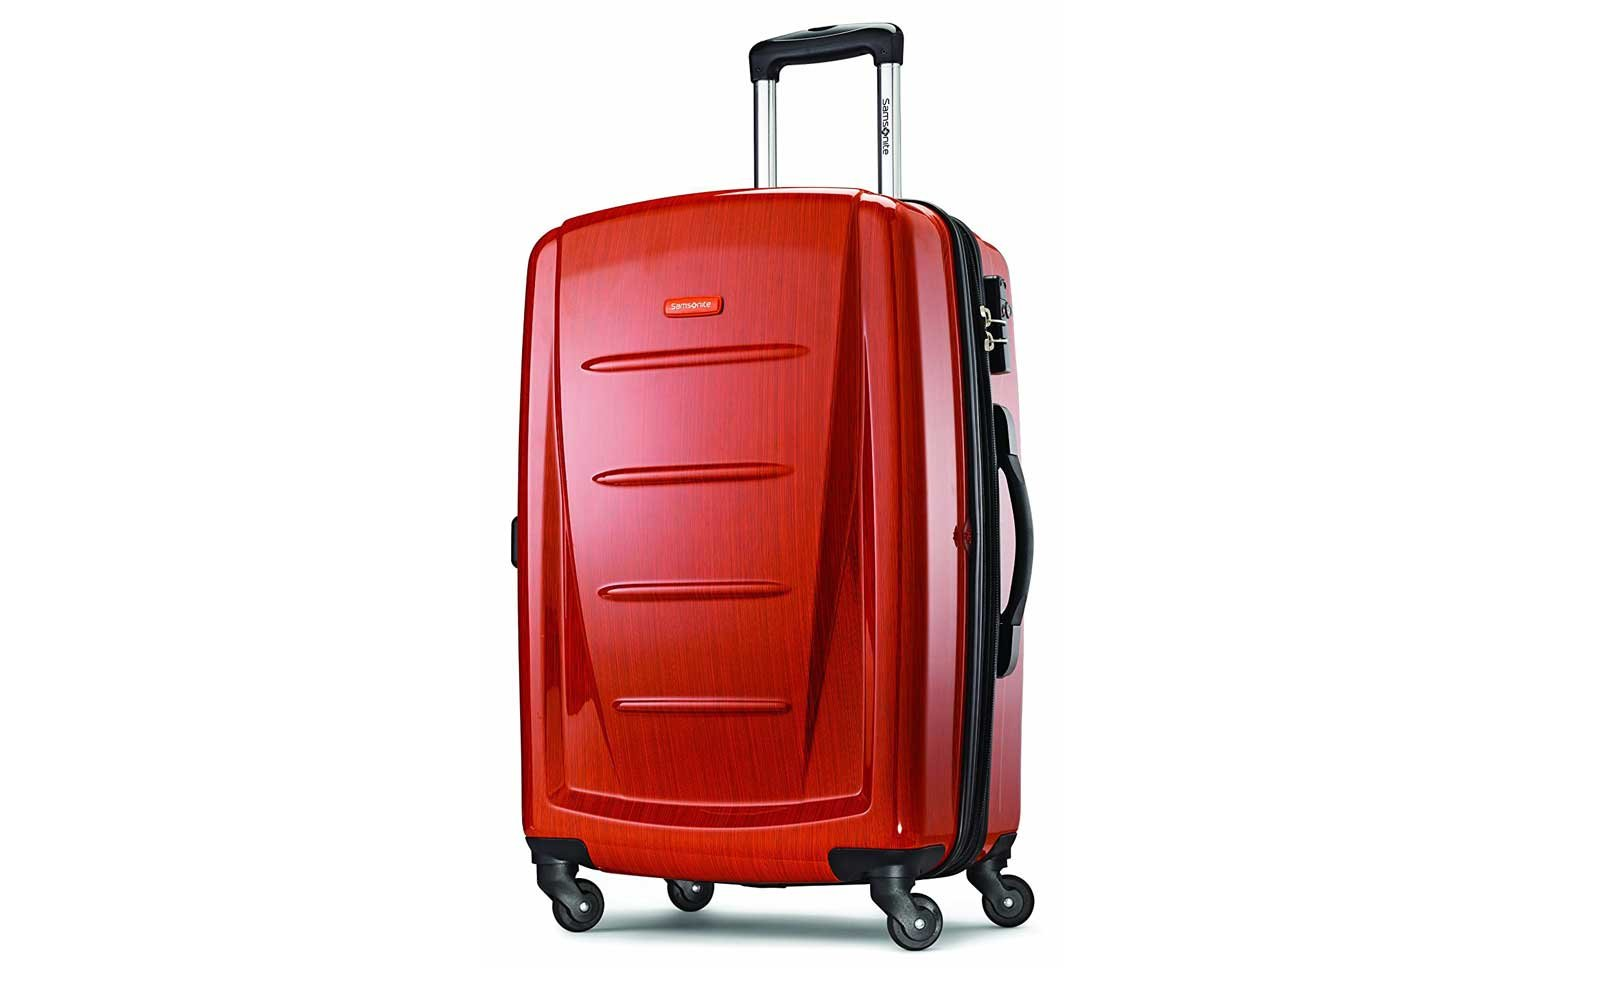 Samsonite Winfield2 28 Inch Luggage